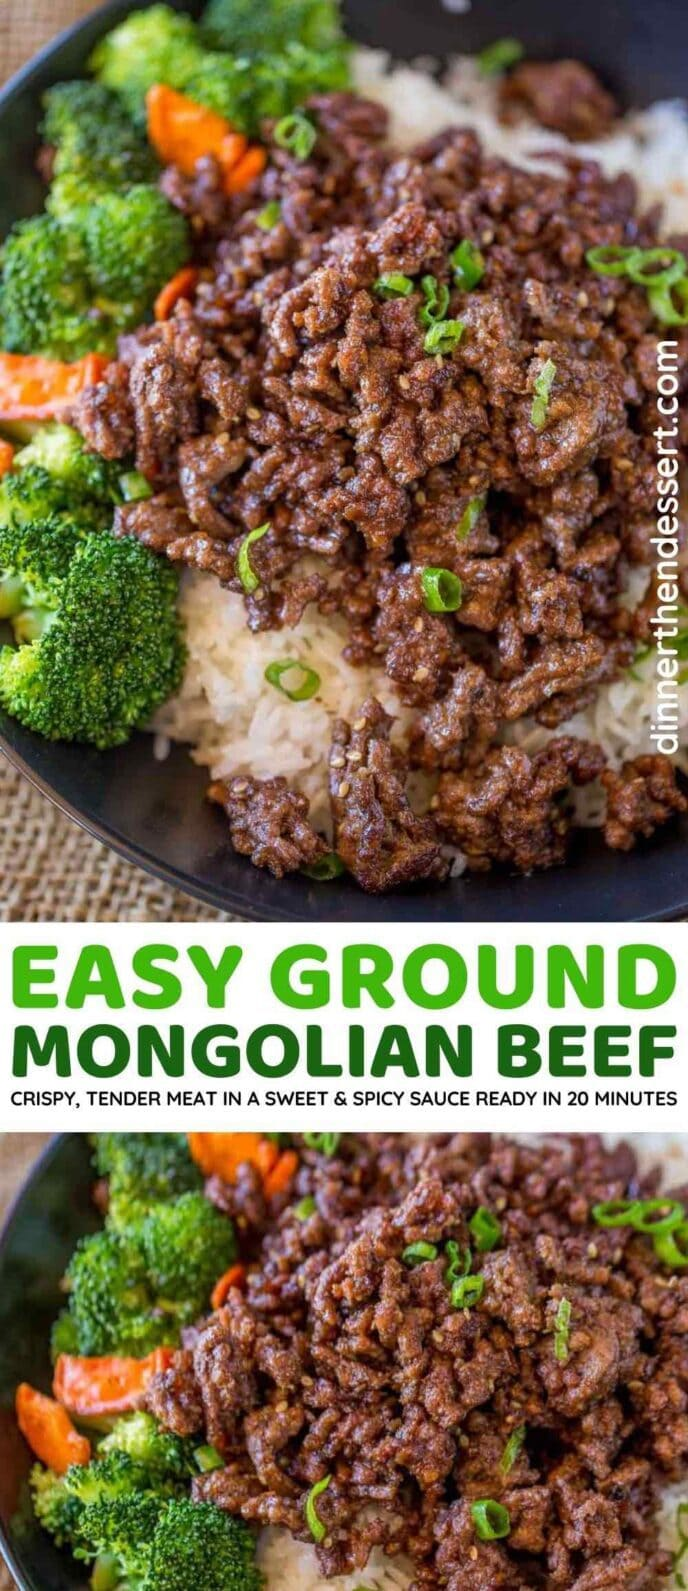 Easy Ground Mongolian Beef collage